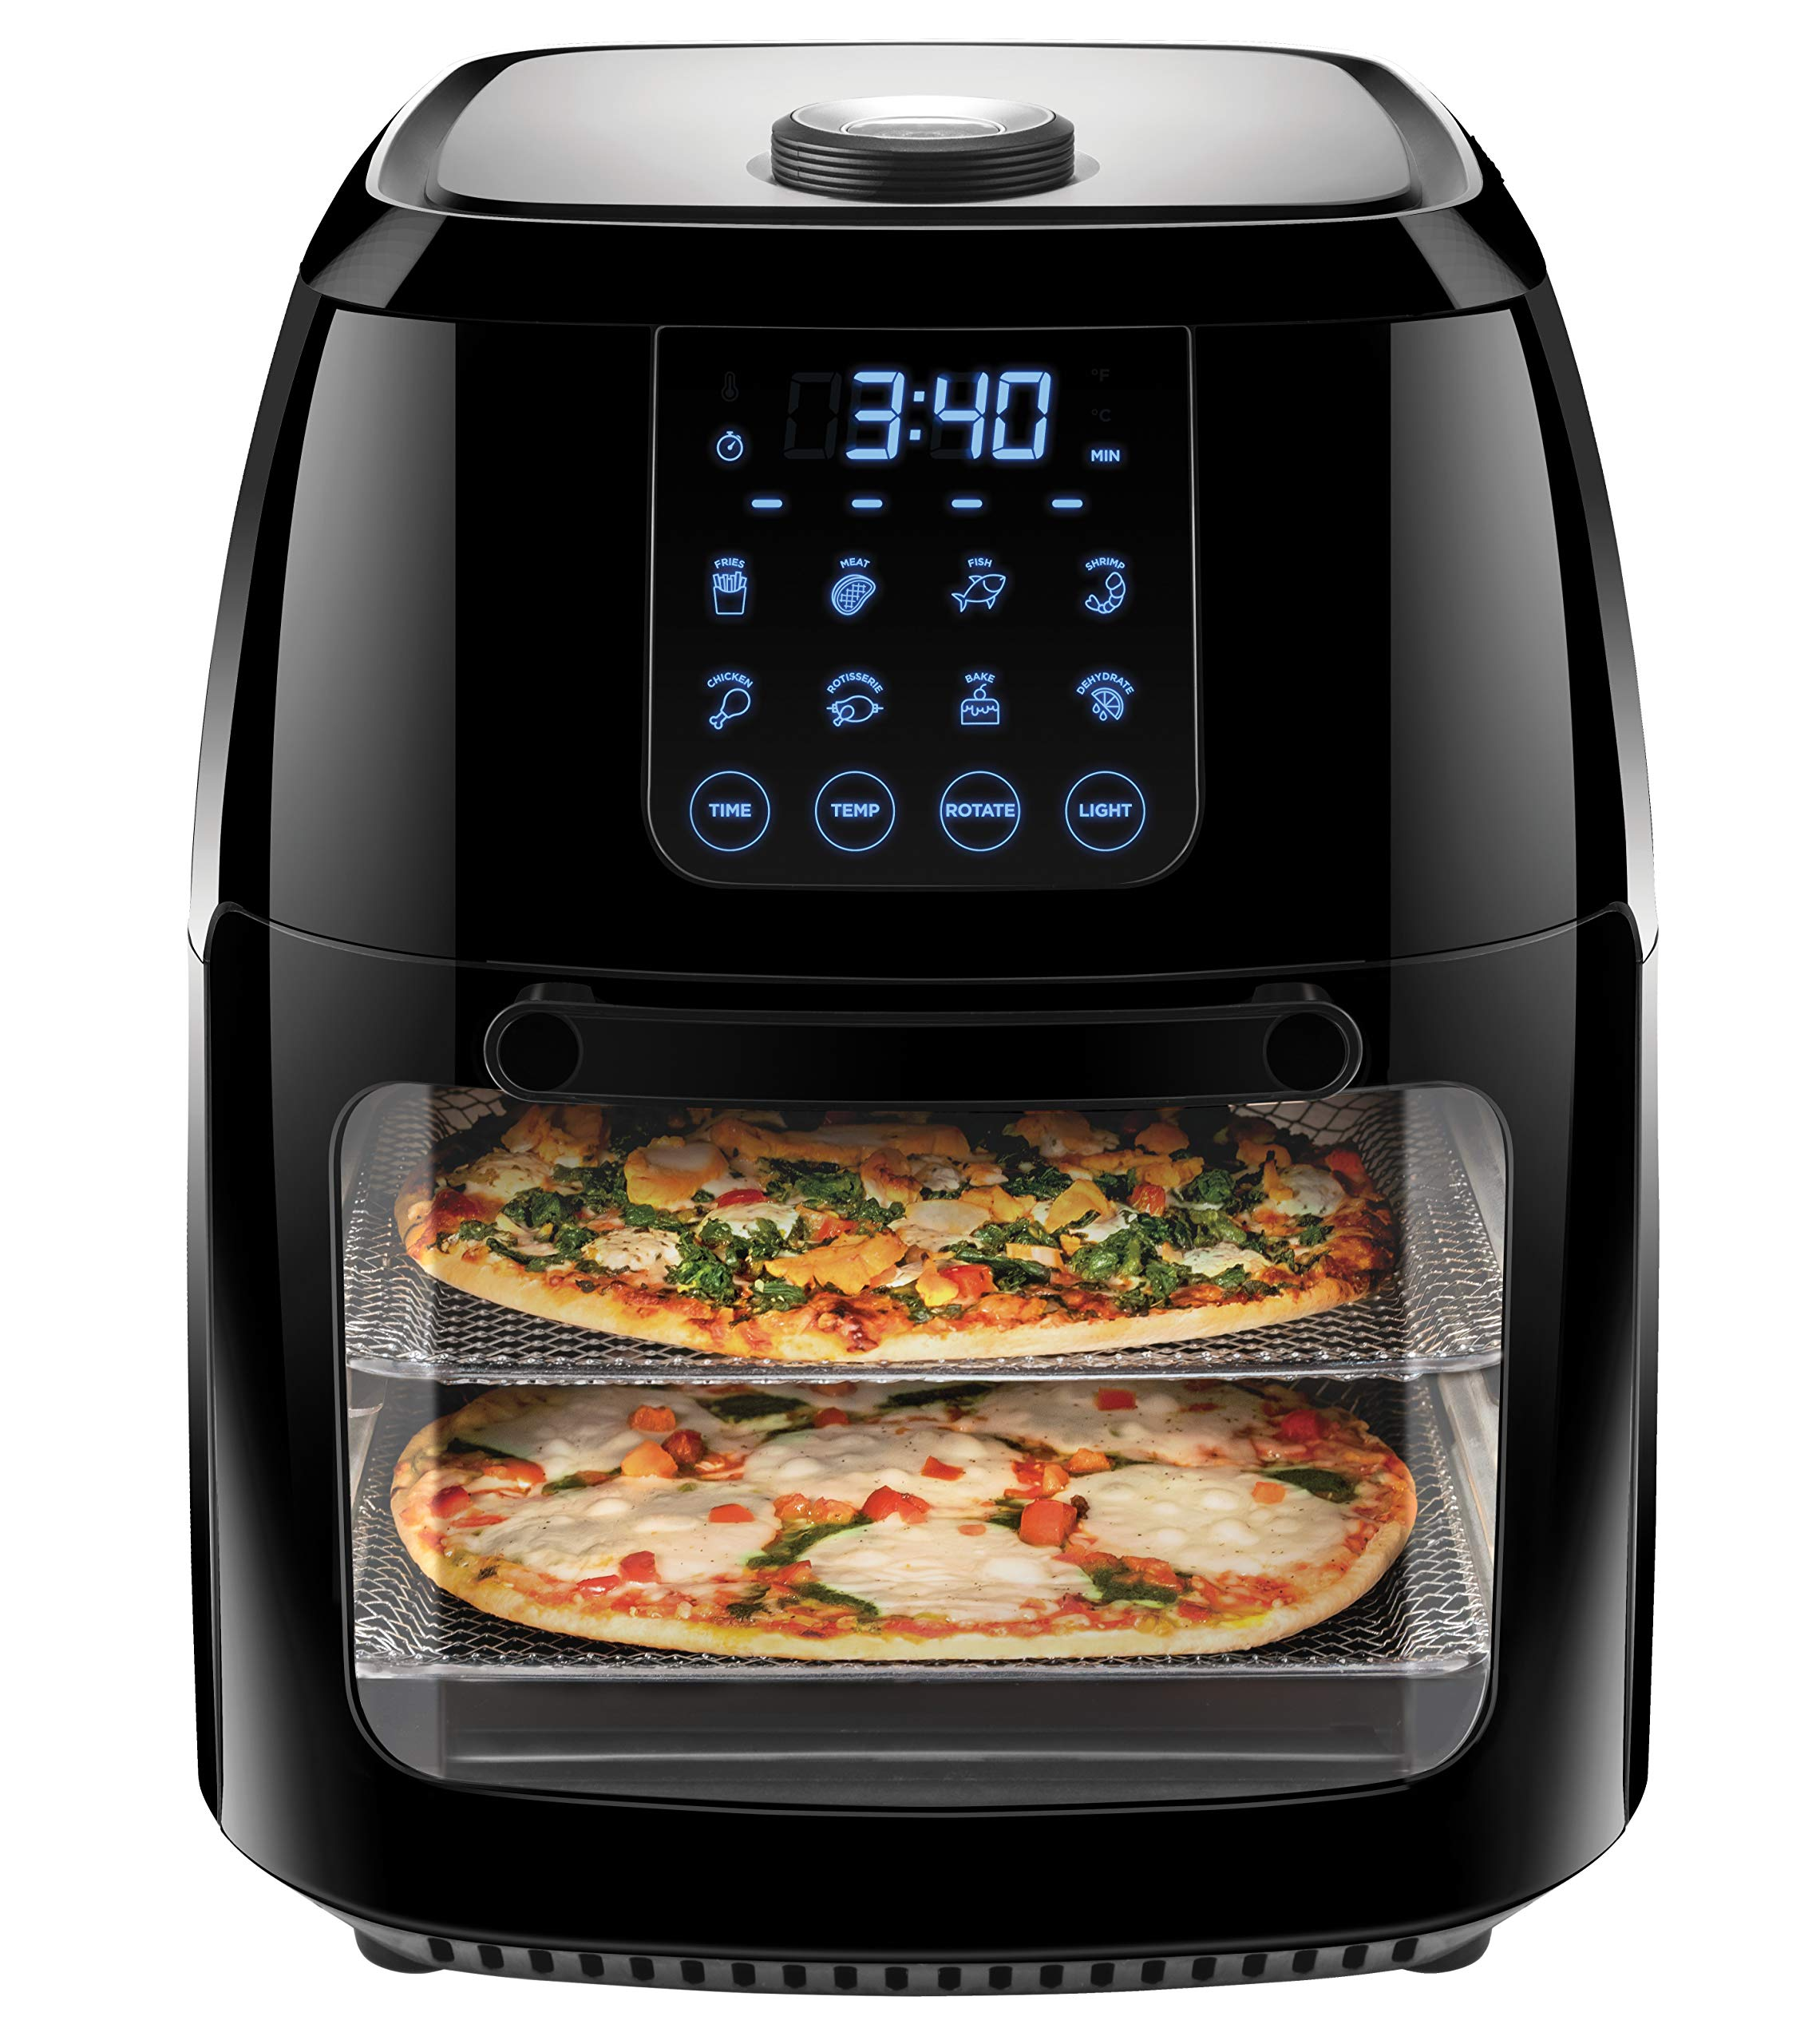 Chefman 6.3 Quart Digital Air Fryer+ Rotisserie, Dehydrator, Convection Oven, 8 Presets to Fry, Roast, Dehydrate & Bake, BPA-Free, Auto Shut-Off, Accessories & Cookbook Included, XL Family Size, Black by Chefman